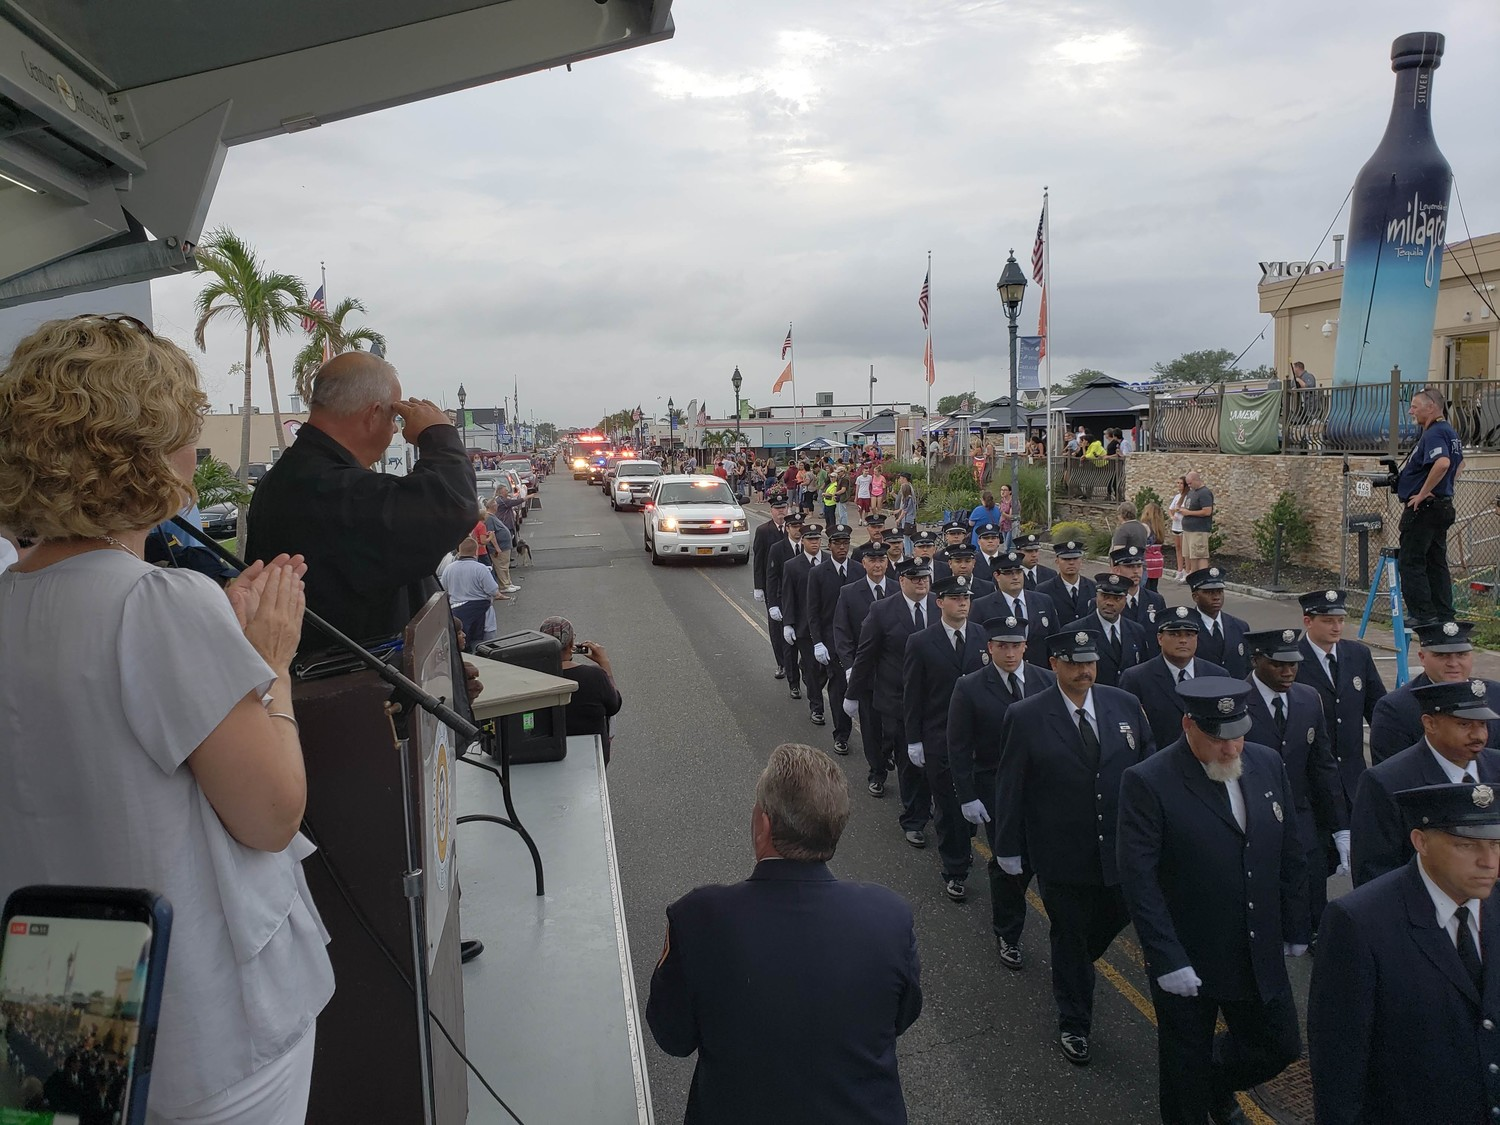 Freeport Mayor Robert Kennedy saluted the Freeport Fire Department during its 125th anniversary parade on Aug. 11.